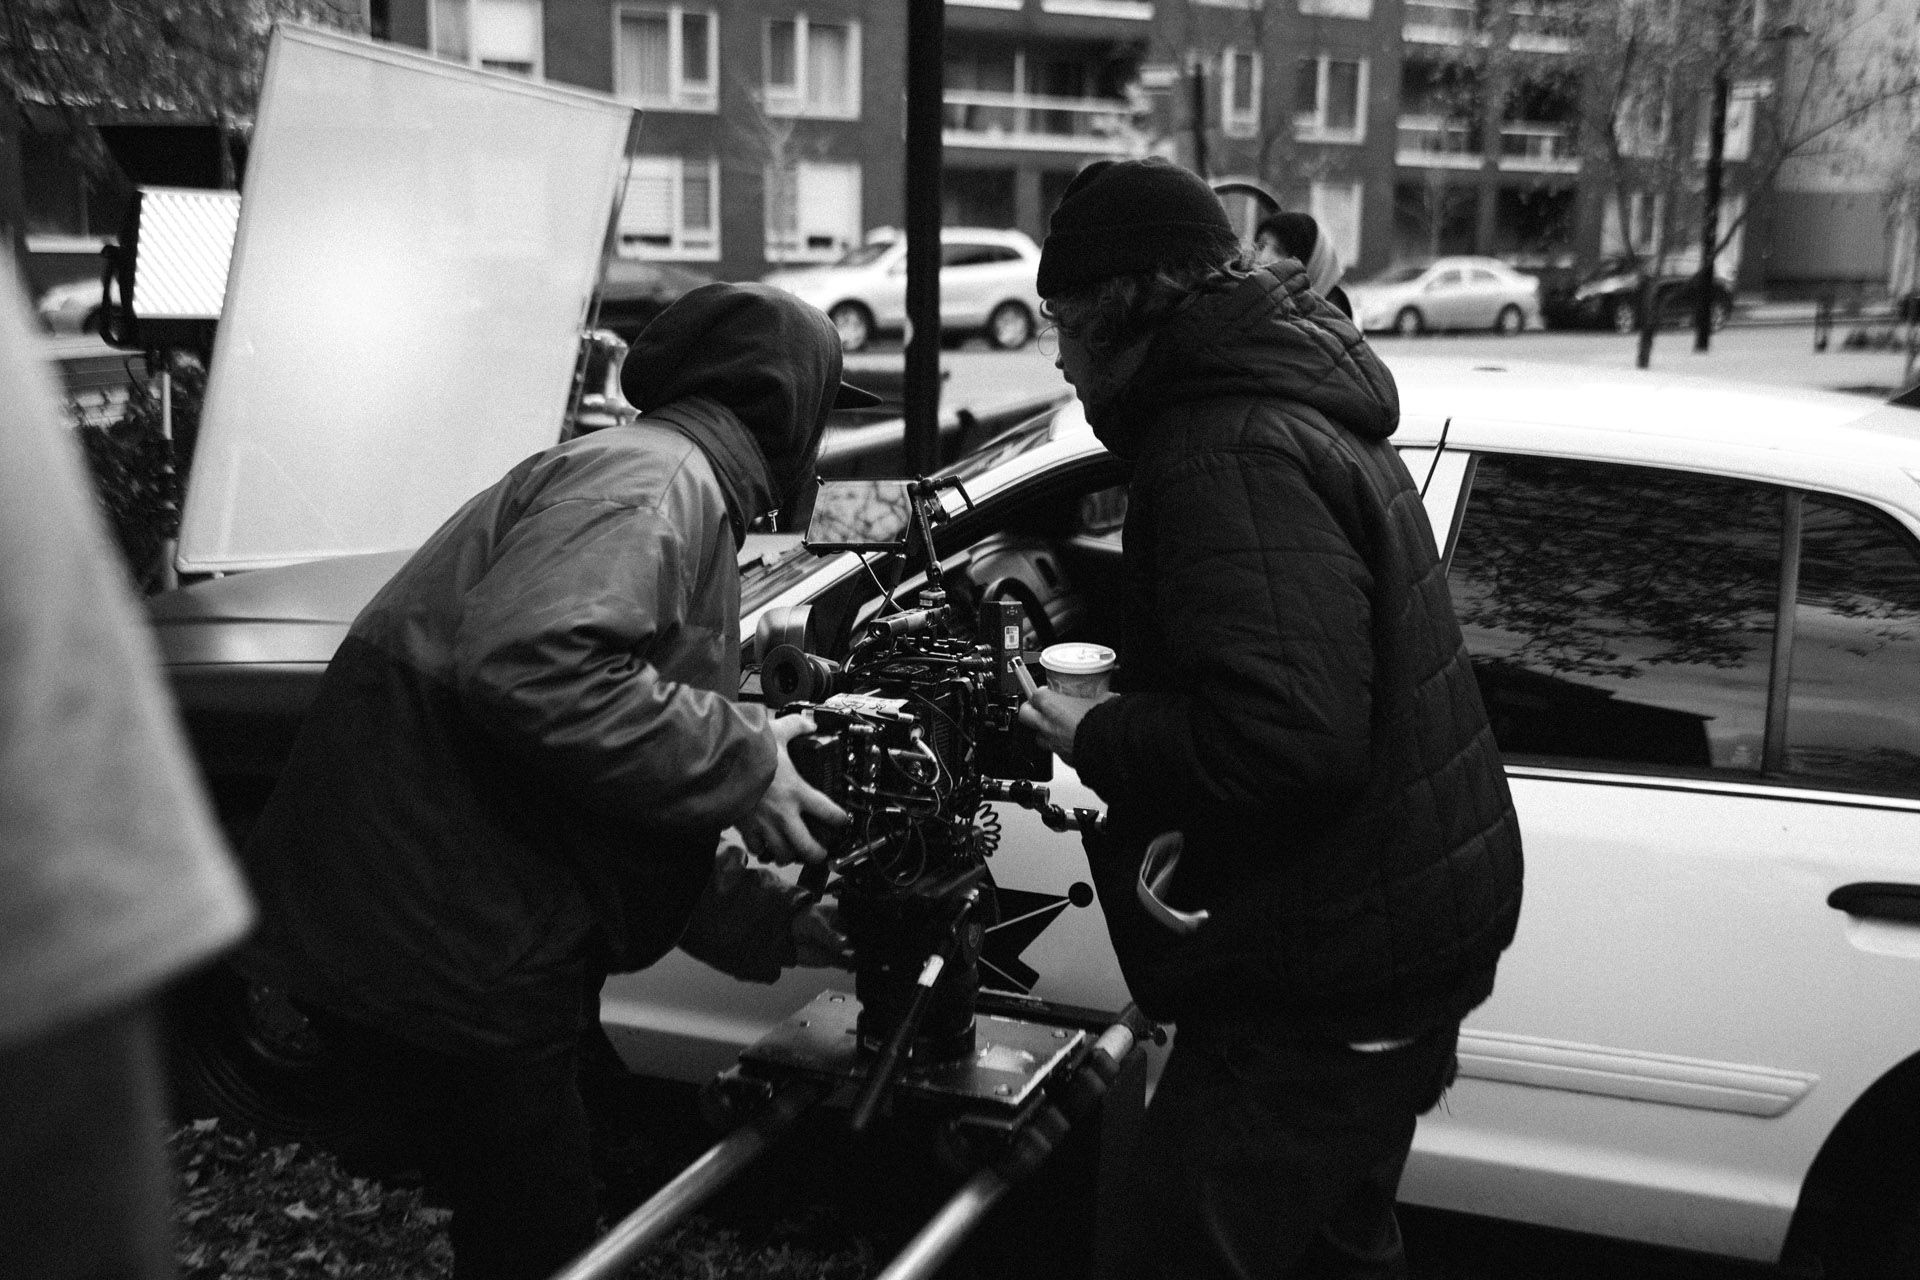 Vincent Ruel-Cote from Les Gamins using camera and structure to make a forward travelling from the outside to the inside of the car in behind the scenes filming TV series La Loi C'est La Loi at night with TV5 Unis